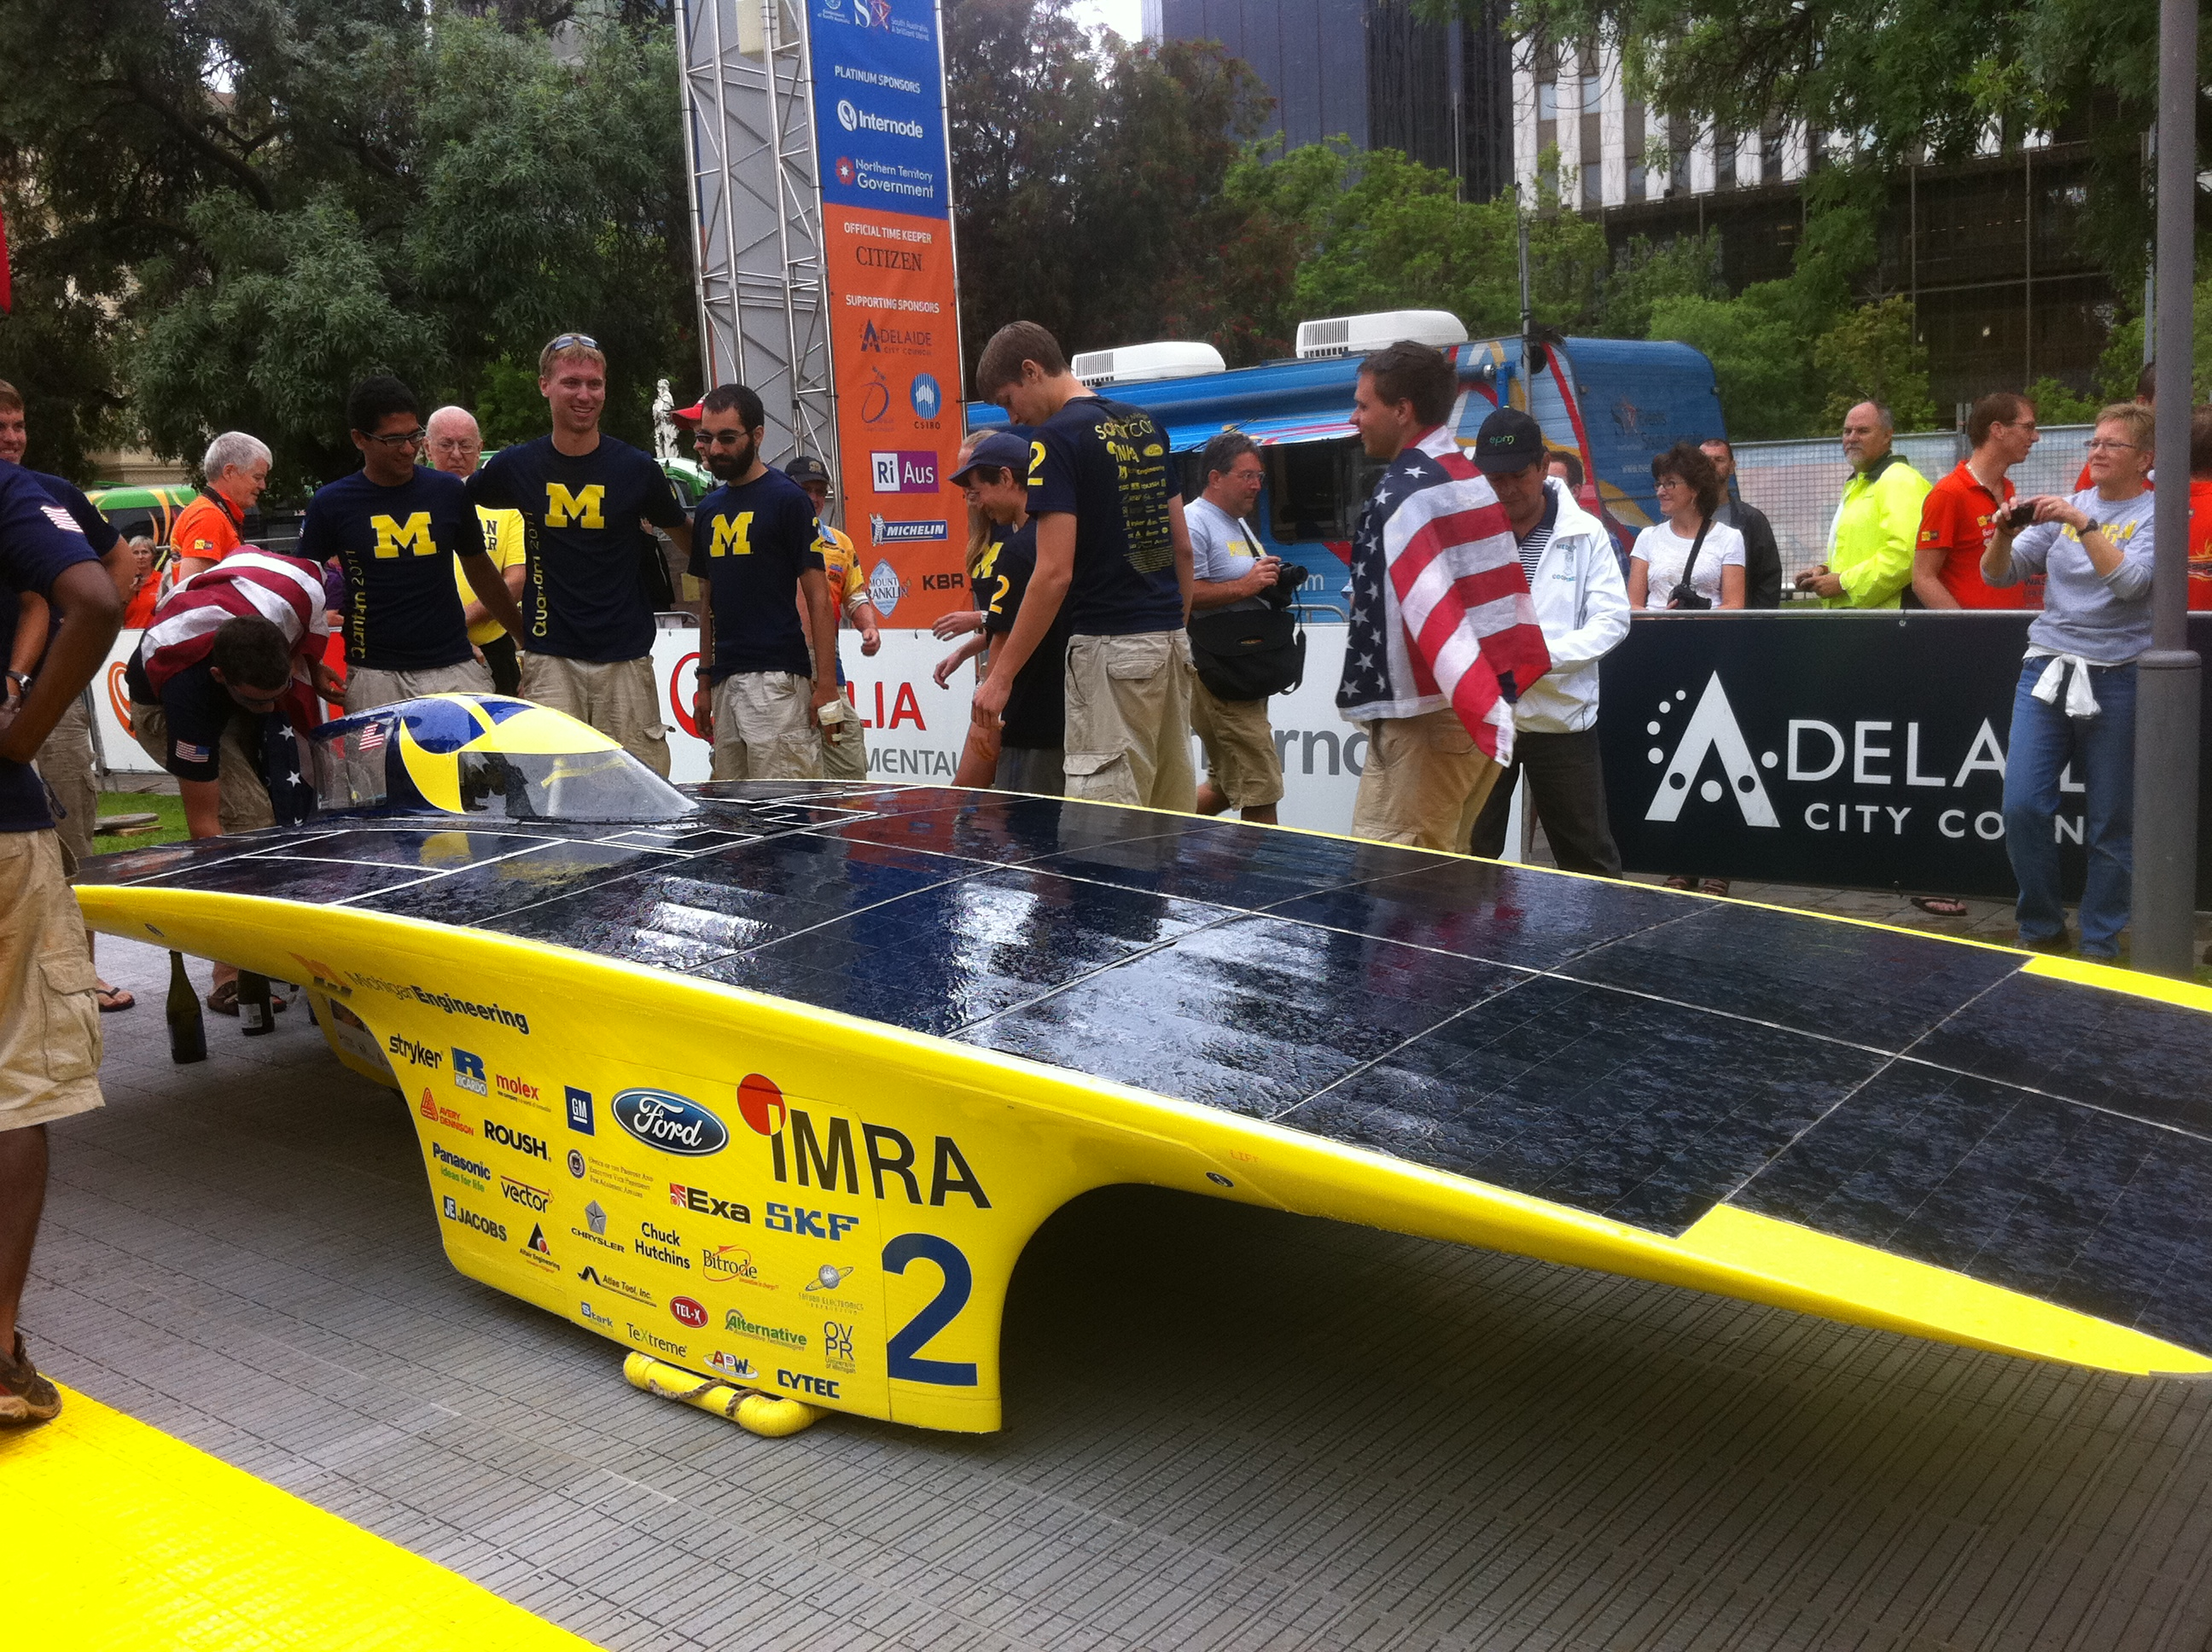 University of Michigan's Quantum (USA), 3rd Winning Team that arrived at Adelaide, Australia